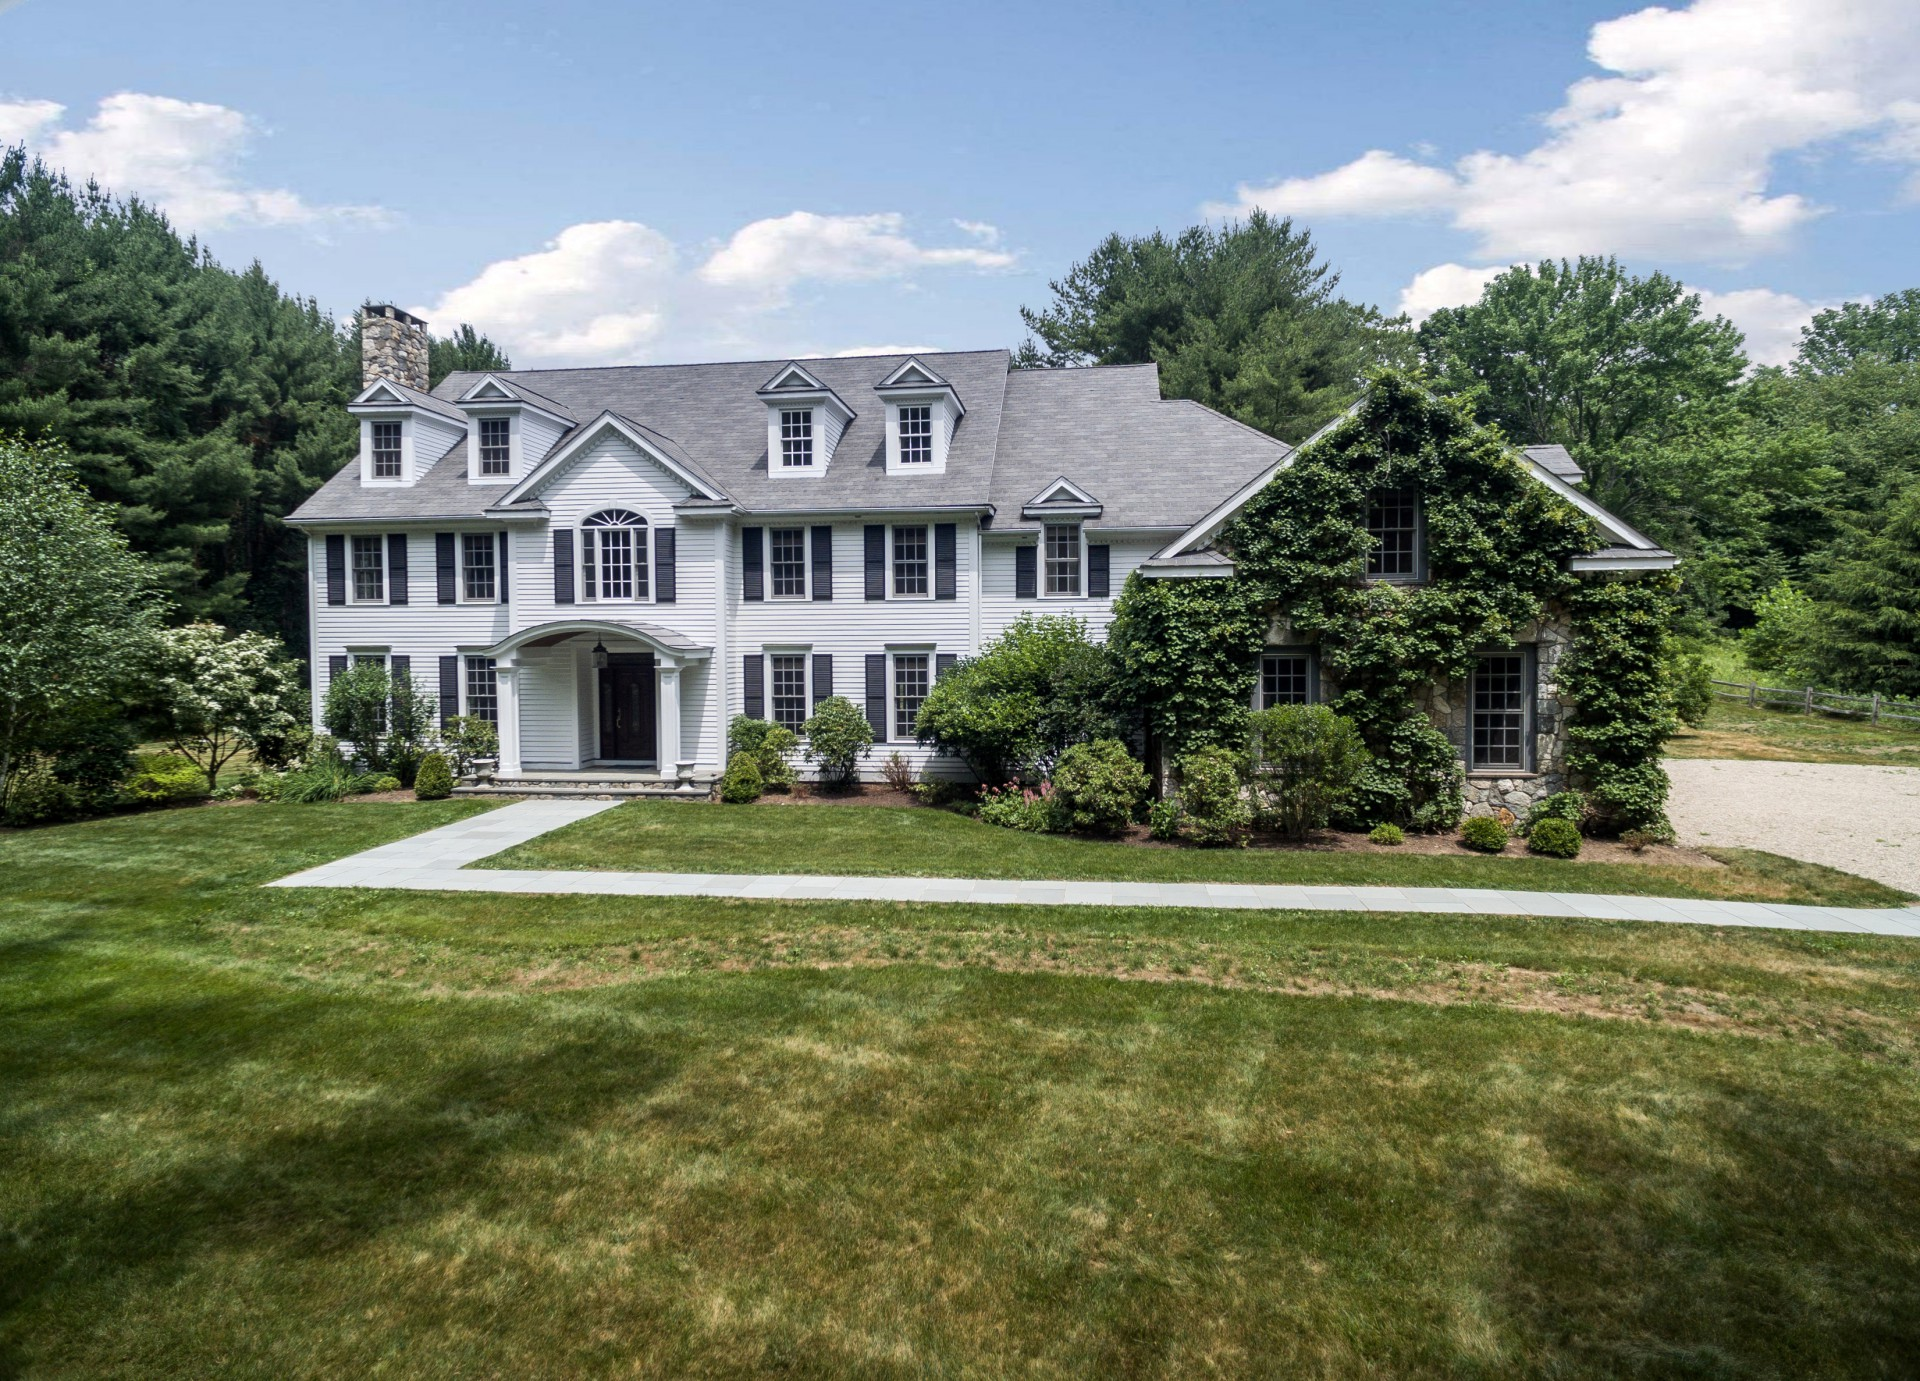 Single Family Home for Sale at Timeless Elegance 20 Old Stagecoach Road Redding, Connecticut 06896 United States